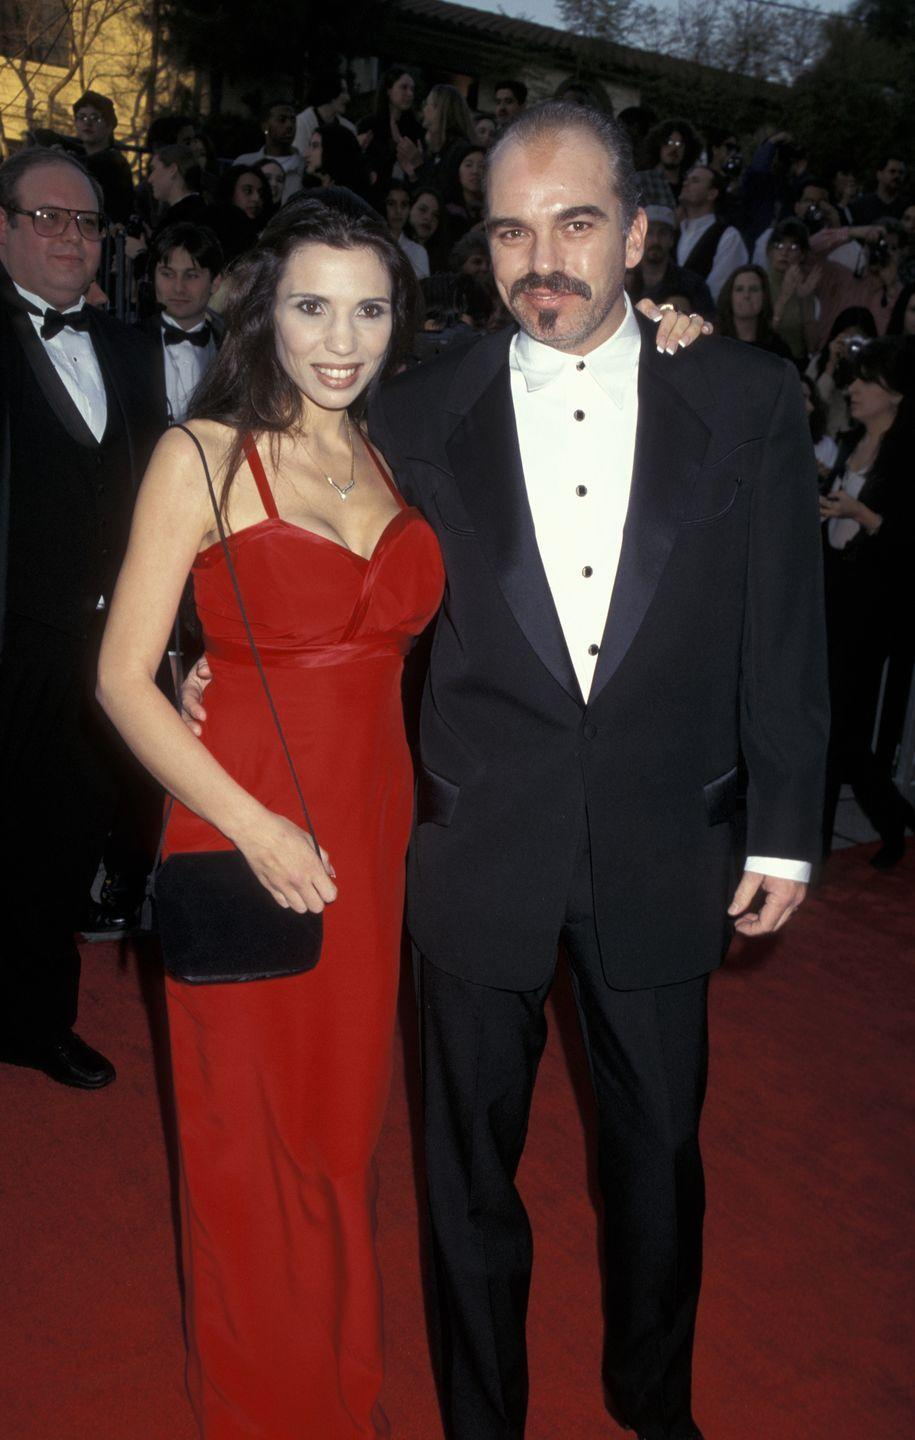 """<p>Actor Billy Bob Thornton has been married <a href=""""https://www.usmagazine.com/celebrity-news/pictures/celebrities-who-have-been-married-three-times-or-more-201495/38096-2/"""" rel=""""nofollow noopener"""" target=""""_blank"""" data-ylk=""""slk:six times"""" class=""""link rapid-noclick-resp"""">six times</a>. He married Melissa Lee Gatlin (1978 to 1980); actress Toni Lawrence (1986 to 1988), actress Cynda Williams (1990 to 1992), model Pietra Thornton (1993 to 1997); and famed actress <a href=""""https://www.womenshealthmag.com/fitness/a19939864/angelina-jolie-workout/"""" rel=""""nofollow noopener"""" target=""""_blank"""" data-ylk=""""slk:Angelina Jolie"""" class=""""link rapid-noclick-resp"""">Angelina Jolie</a> (2000 to 2003). Billy Bob married his sixth wife, actress Connie Angland, in 2014. </p>"""